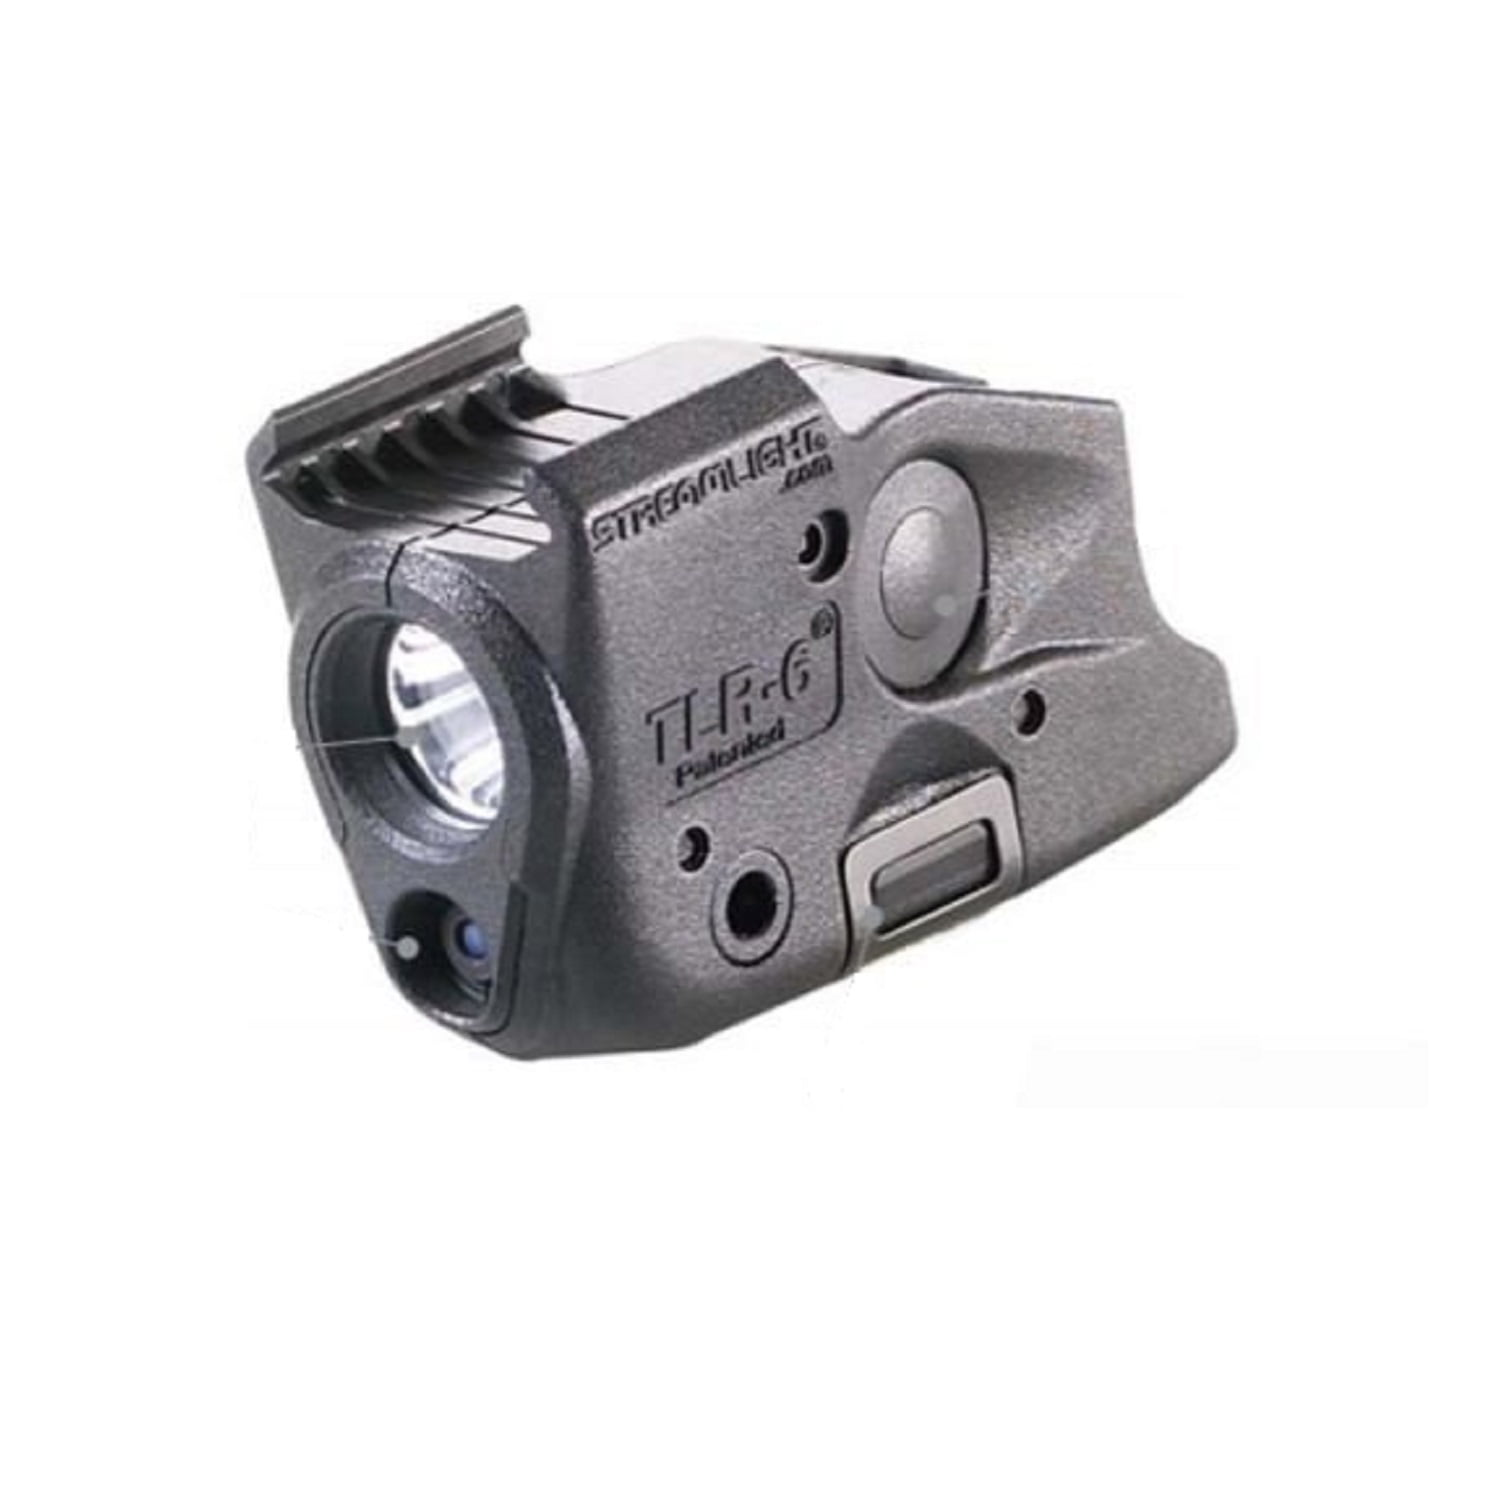 Streamlight TLR-6 RailMount for Glock Flashlight Black by Streamlight